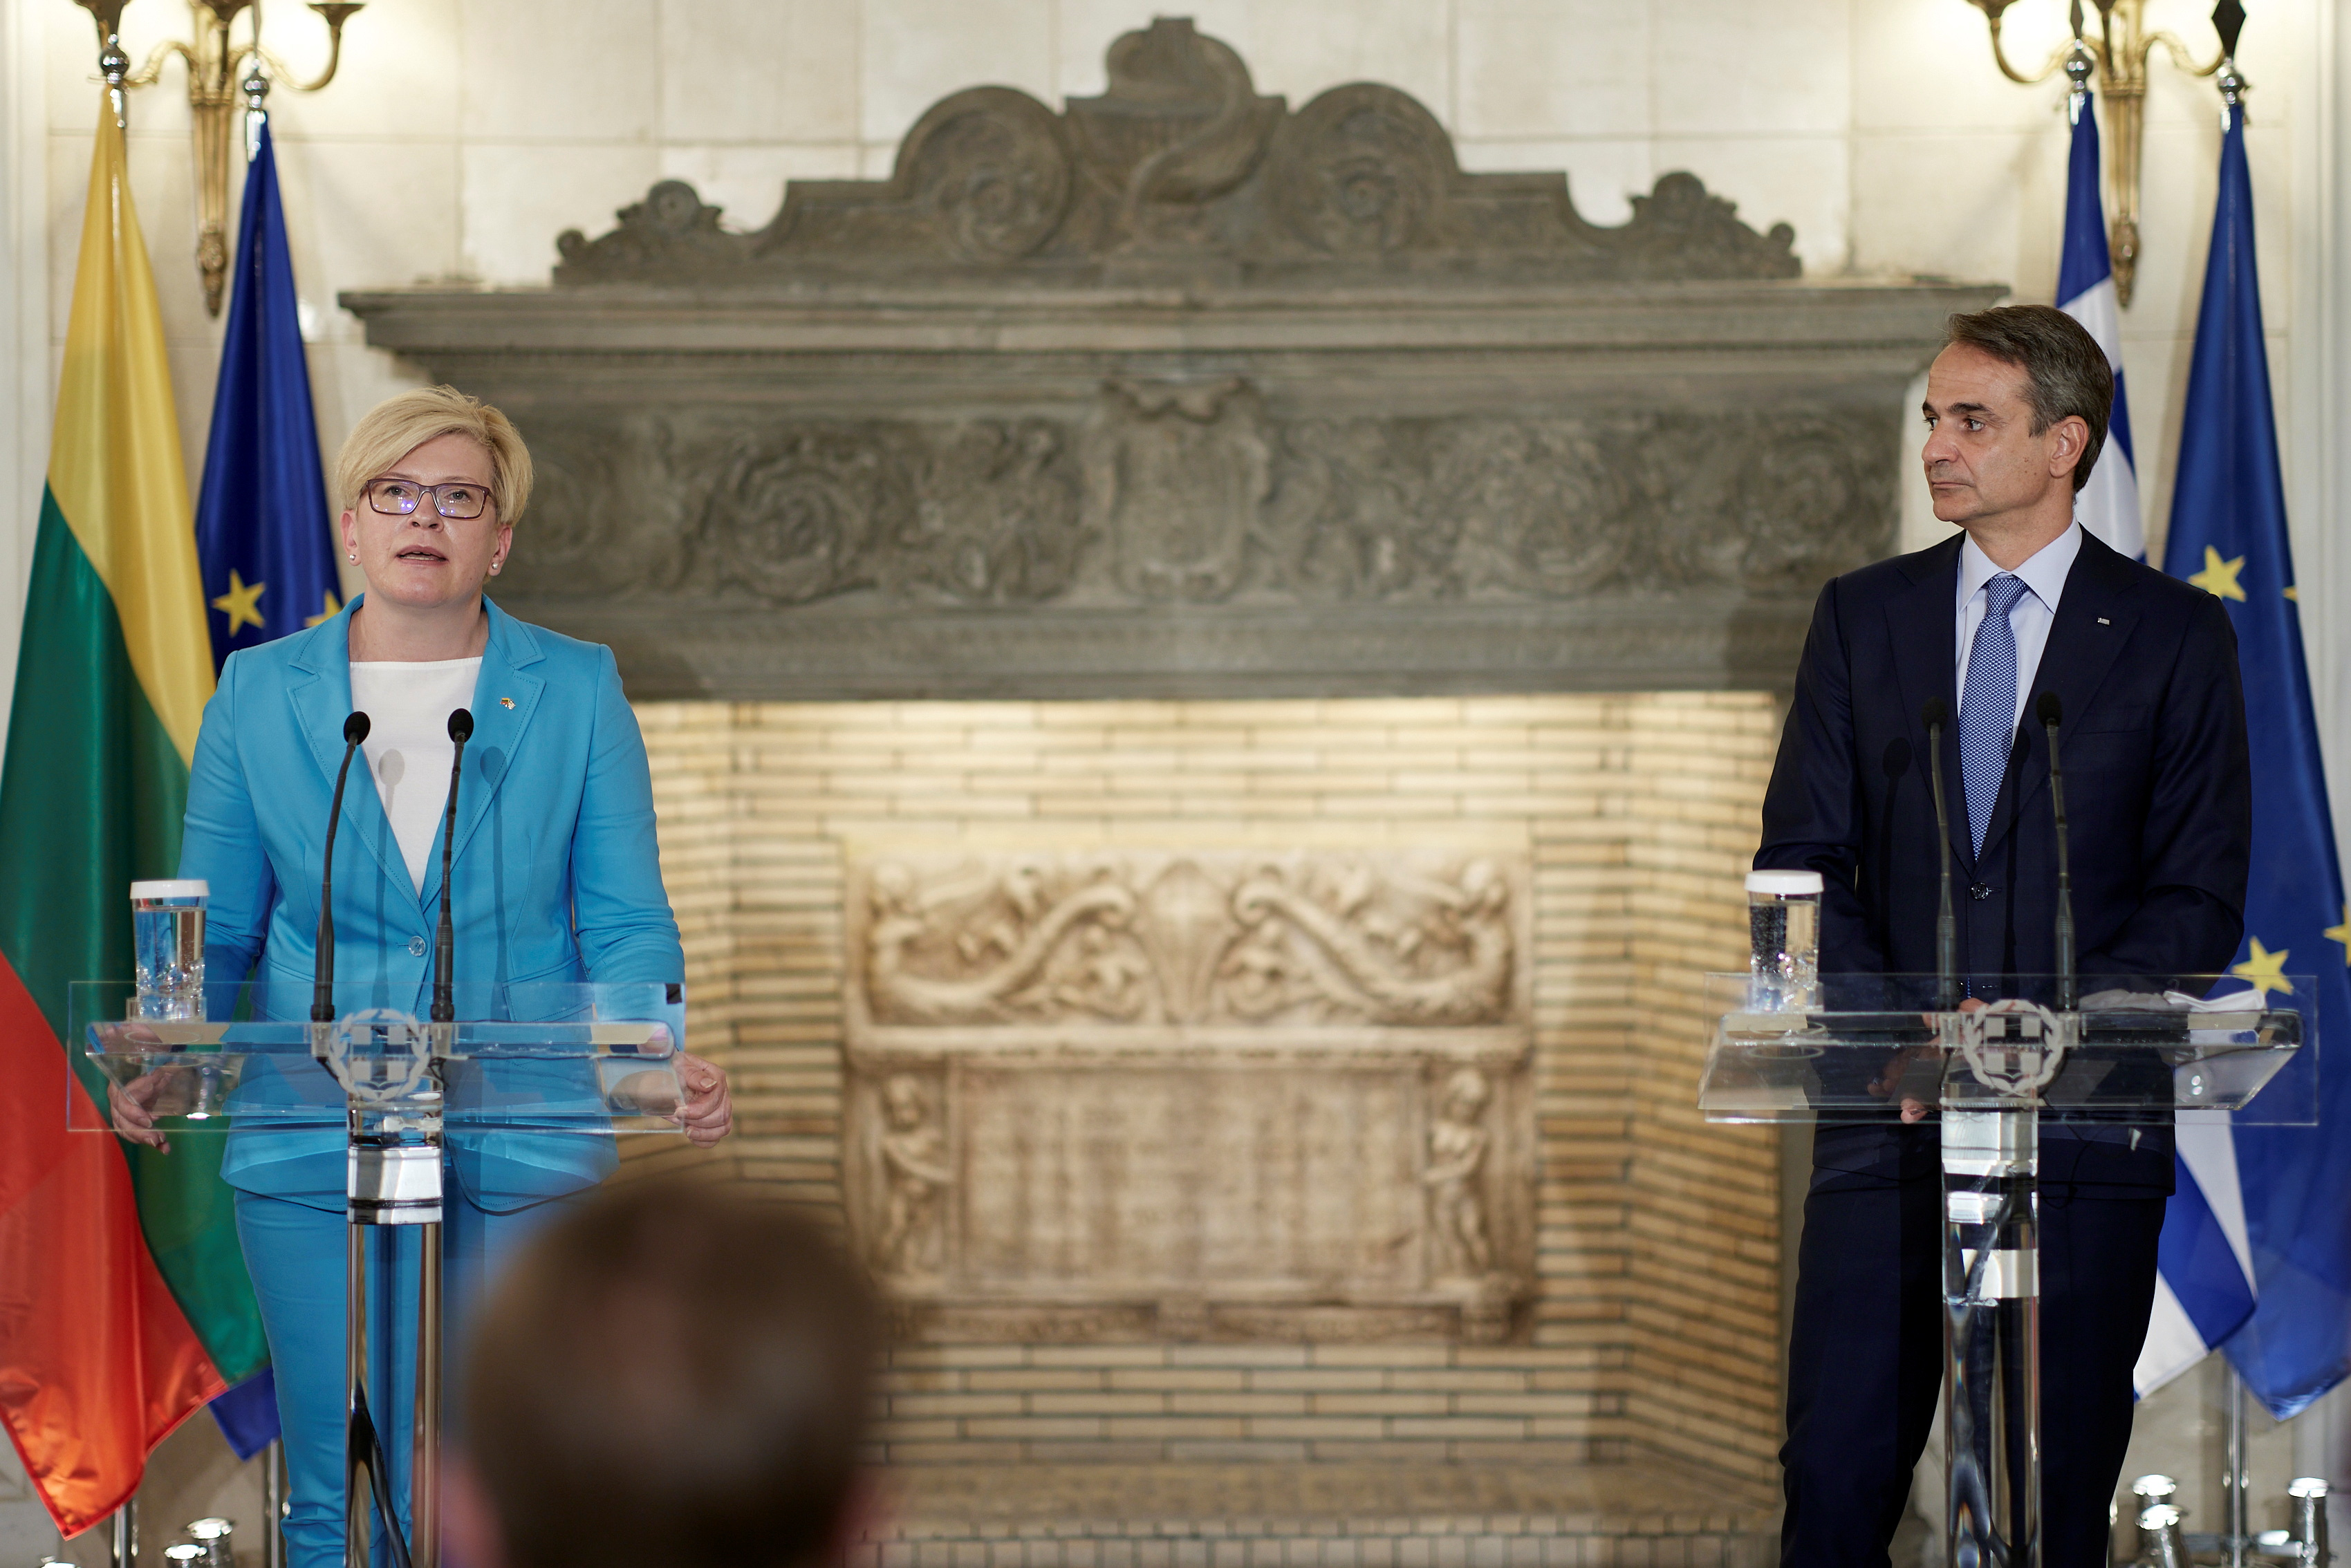 Greek Prime Minister Kyriakos Mitsotakis and his Lithuanian counterpart Ingrida Simonyte attend a news conference following their meeting at the Maximos Mansion in Athens, Greece, July 15, 2021. Dimitris Papamitsos/Greek Prime Minister's Office/Handout via REUTERS